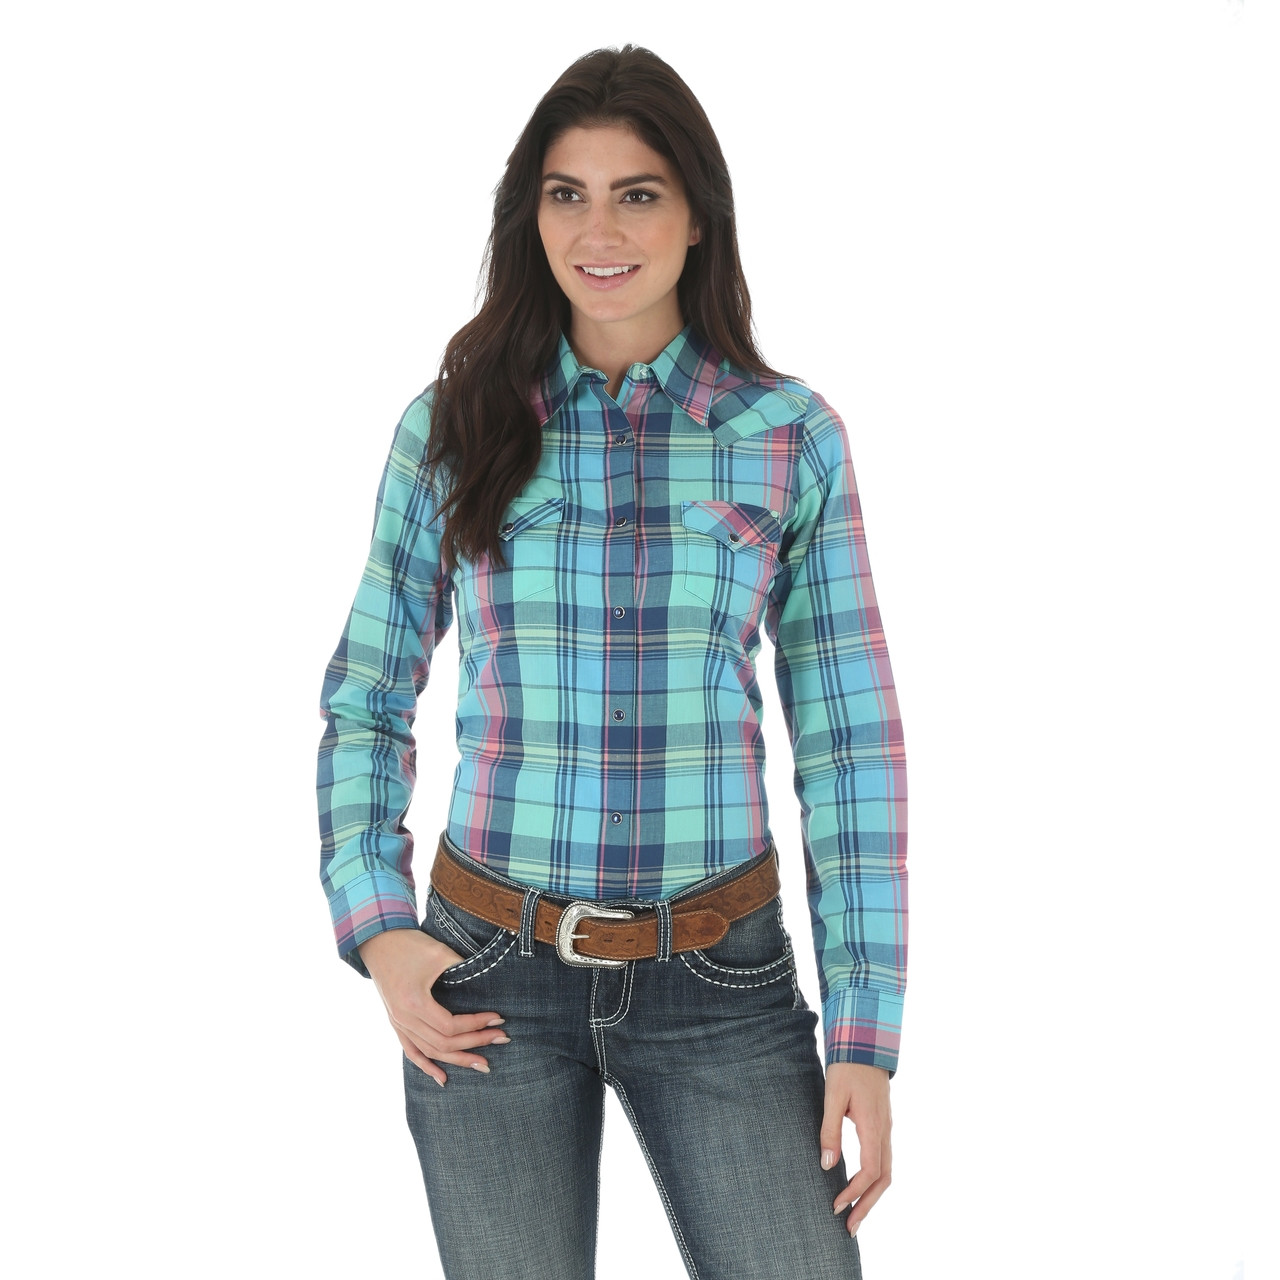 11eda03b Women's As Real As Wrangler Pink/Green/Navy Plaid Shirt - Herbert's Boots  and Western Wear